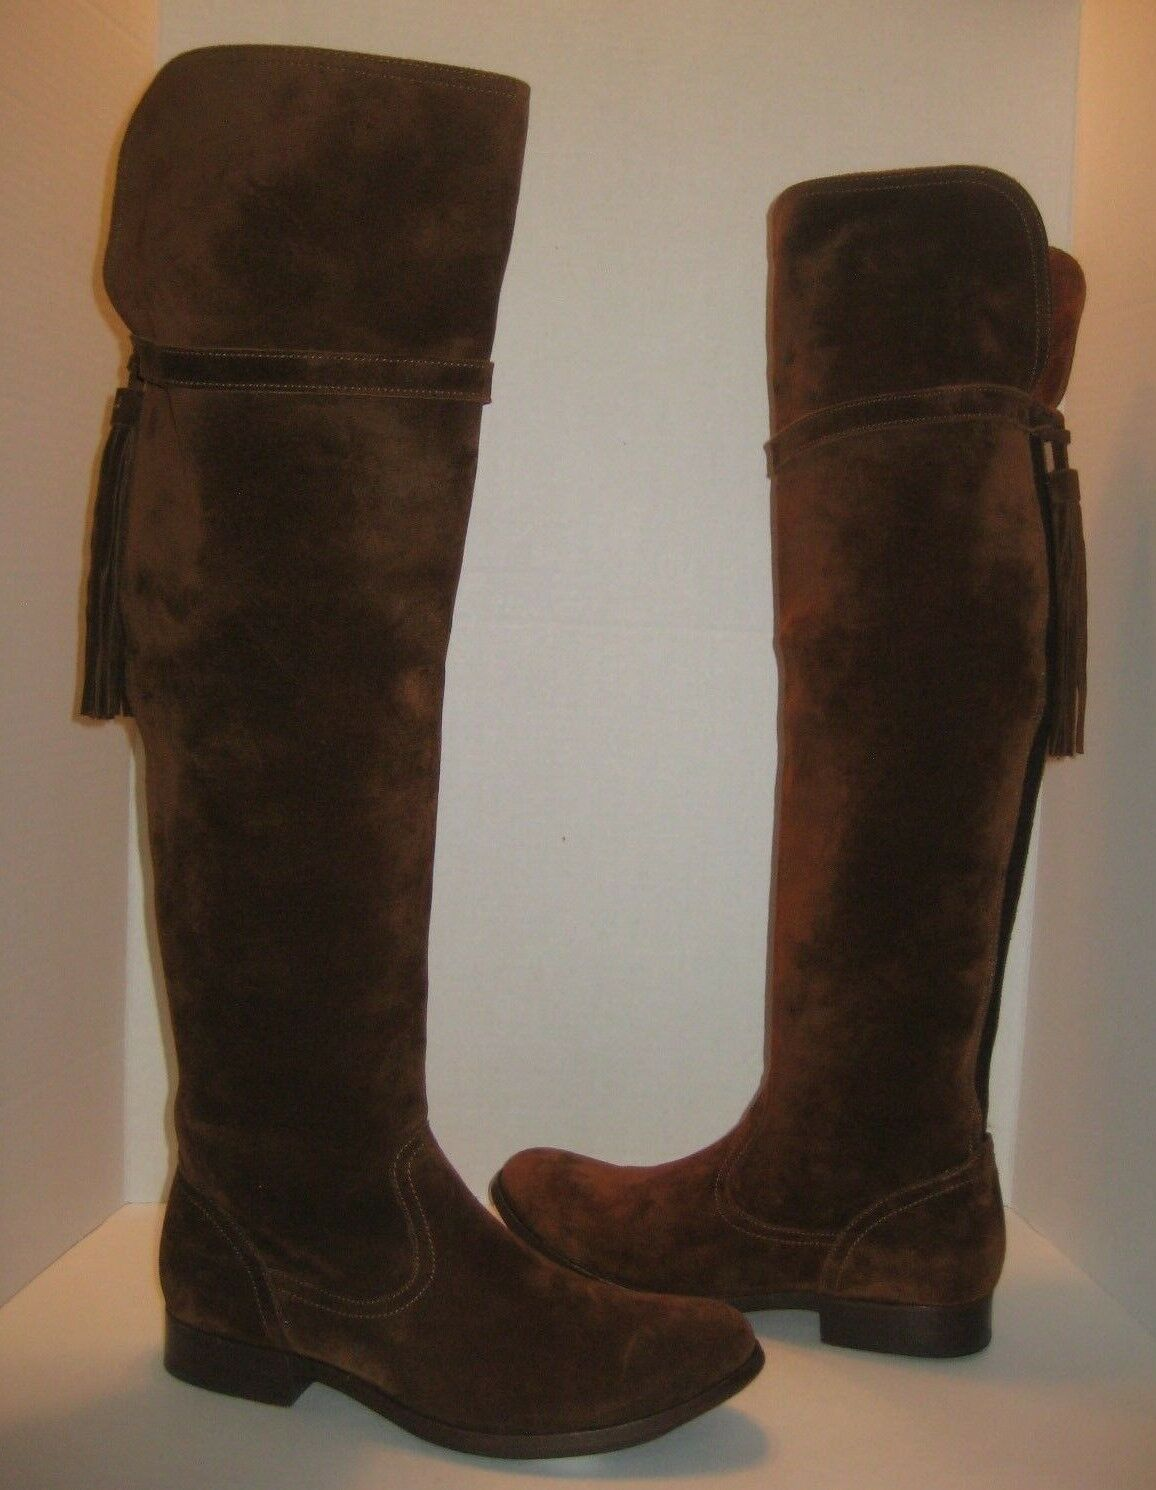 FRYE MOLLY TASSEL OVER THE KNEE WOOD BROWN SUEDE BOOTS SIZE 8 548+